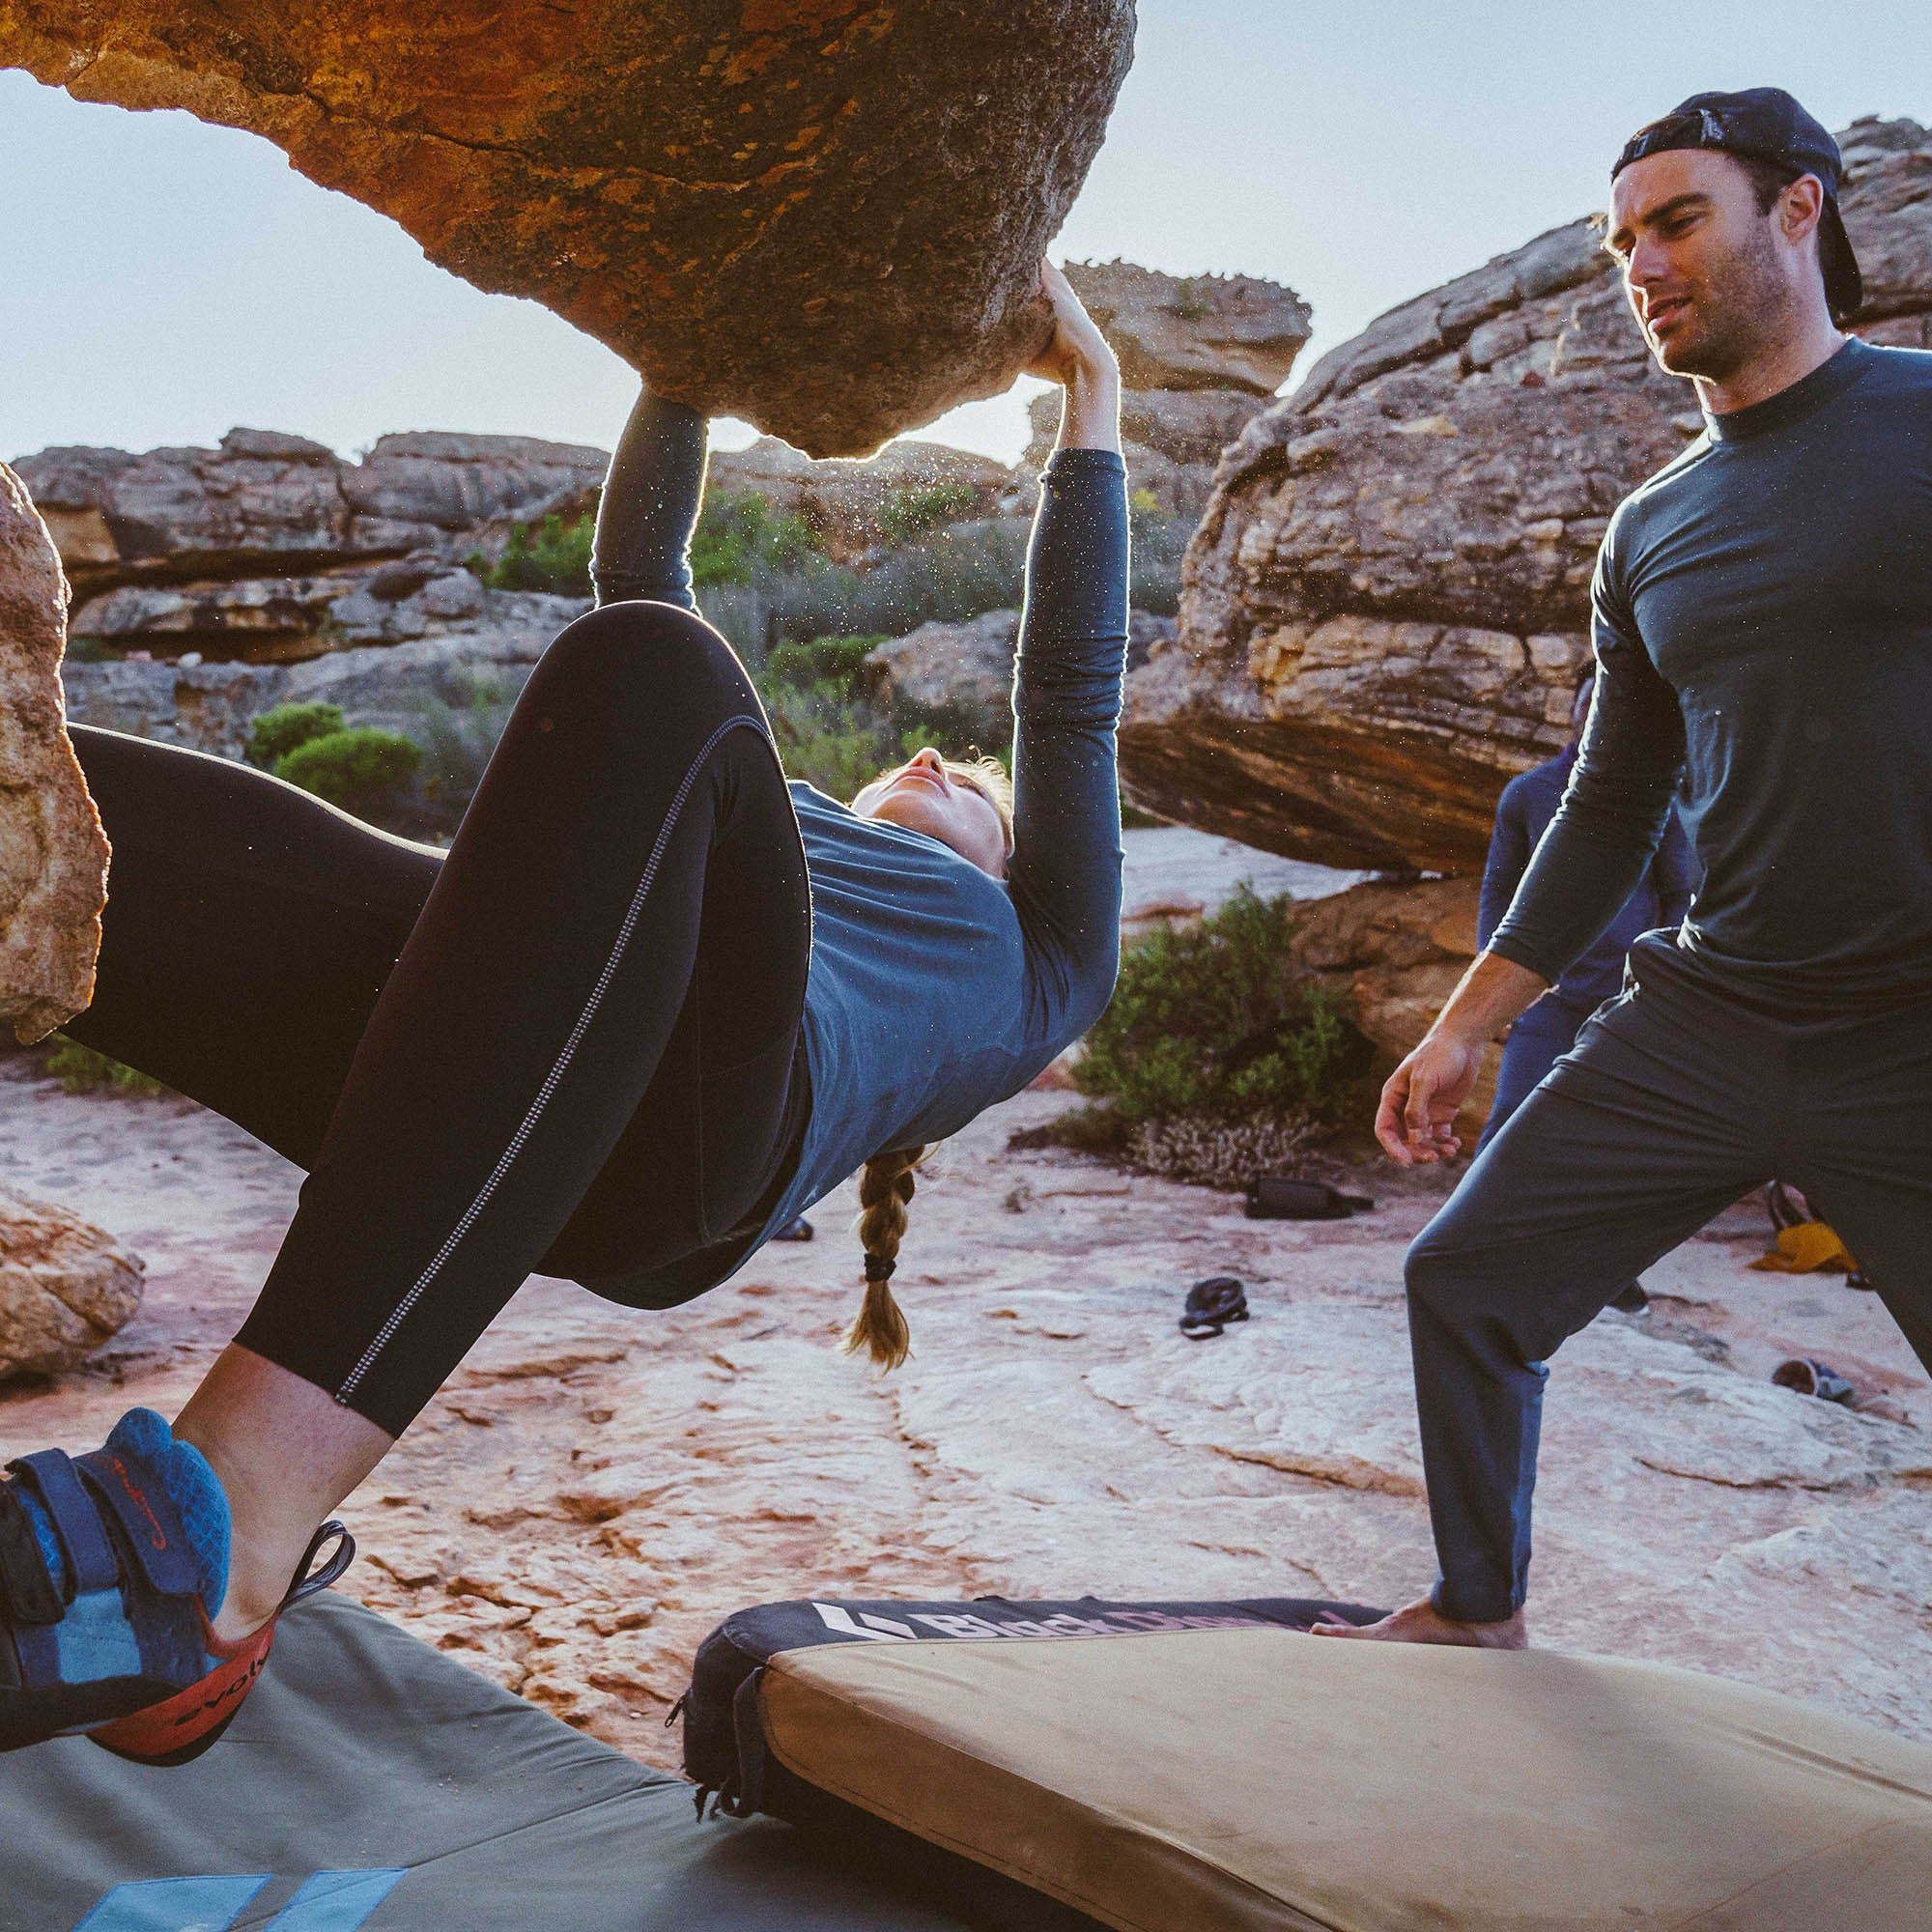 Running is the link when bouldering in the Cederberg mountains, SA